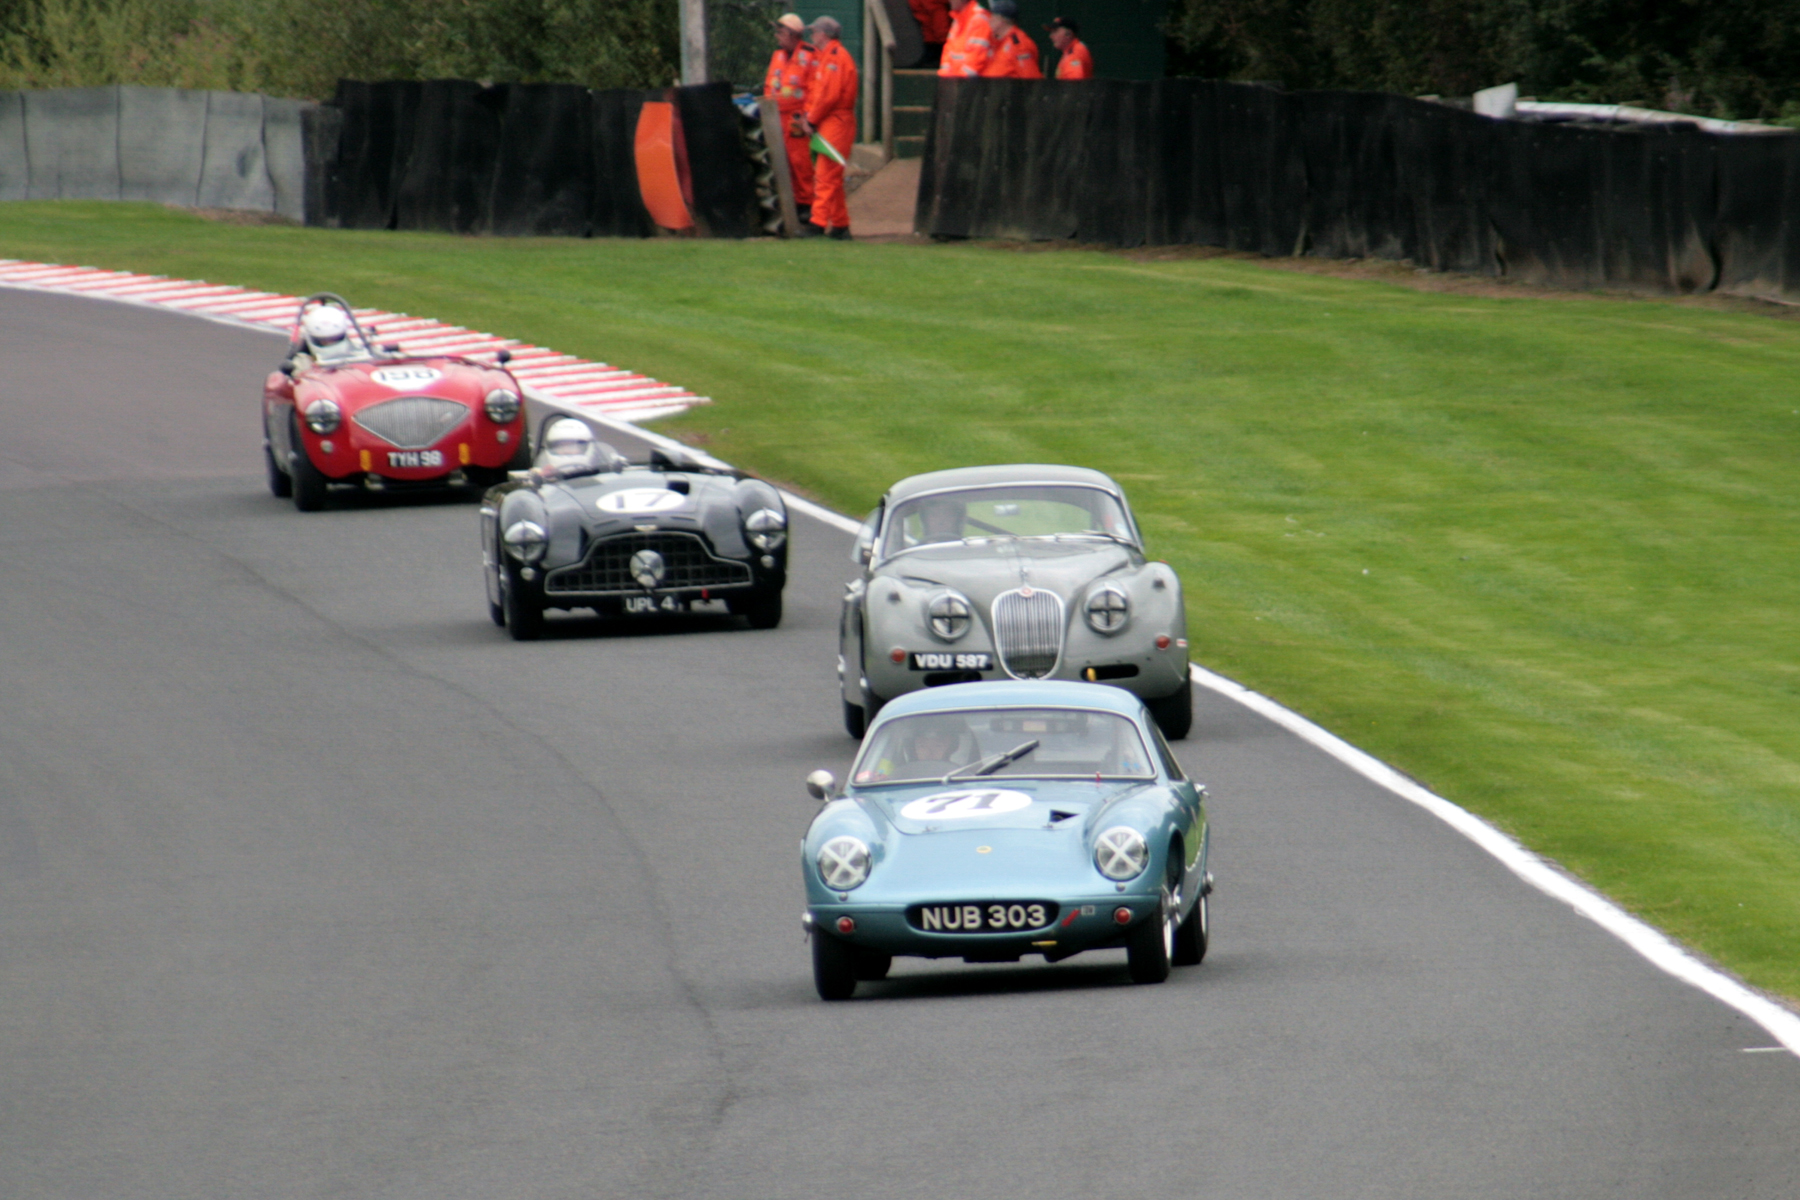 Brian Arculus led from start to finish but the Lotus driver was watching Paul De Havilland's Jaguar XK150 closely in the early stages.